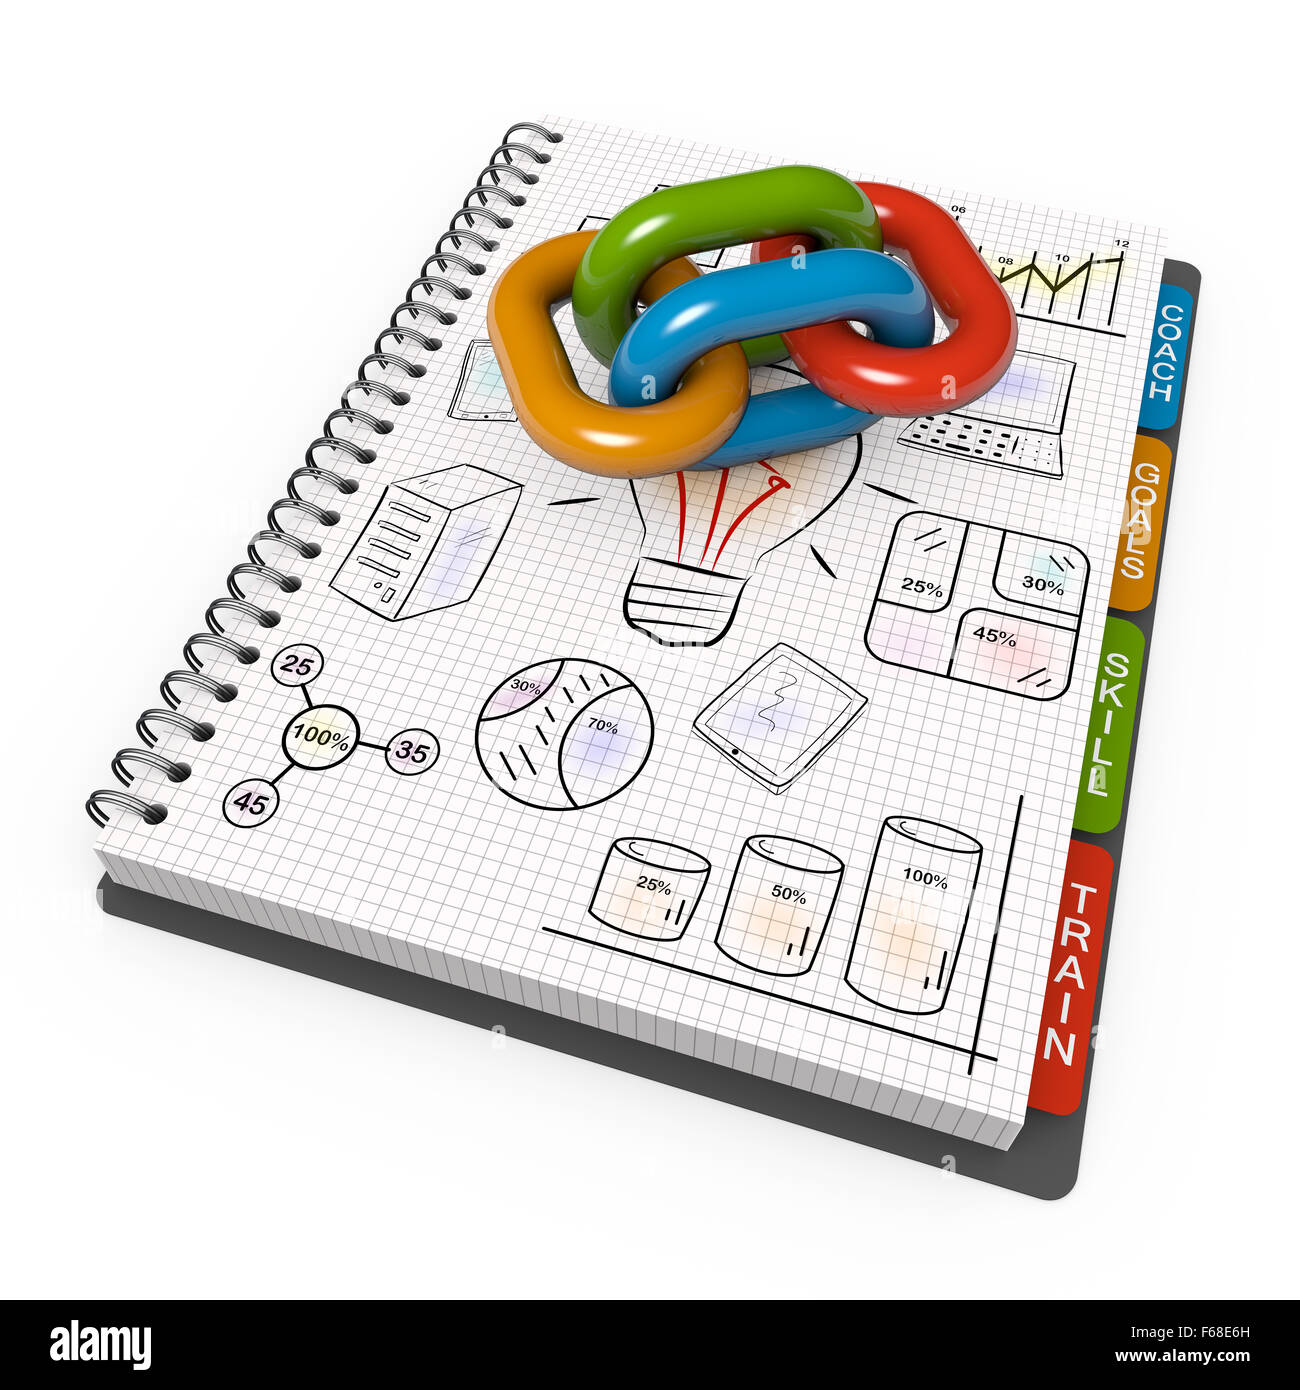 Spiral notebook with the associated chain - Stock Image